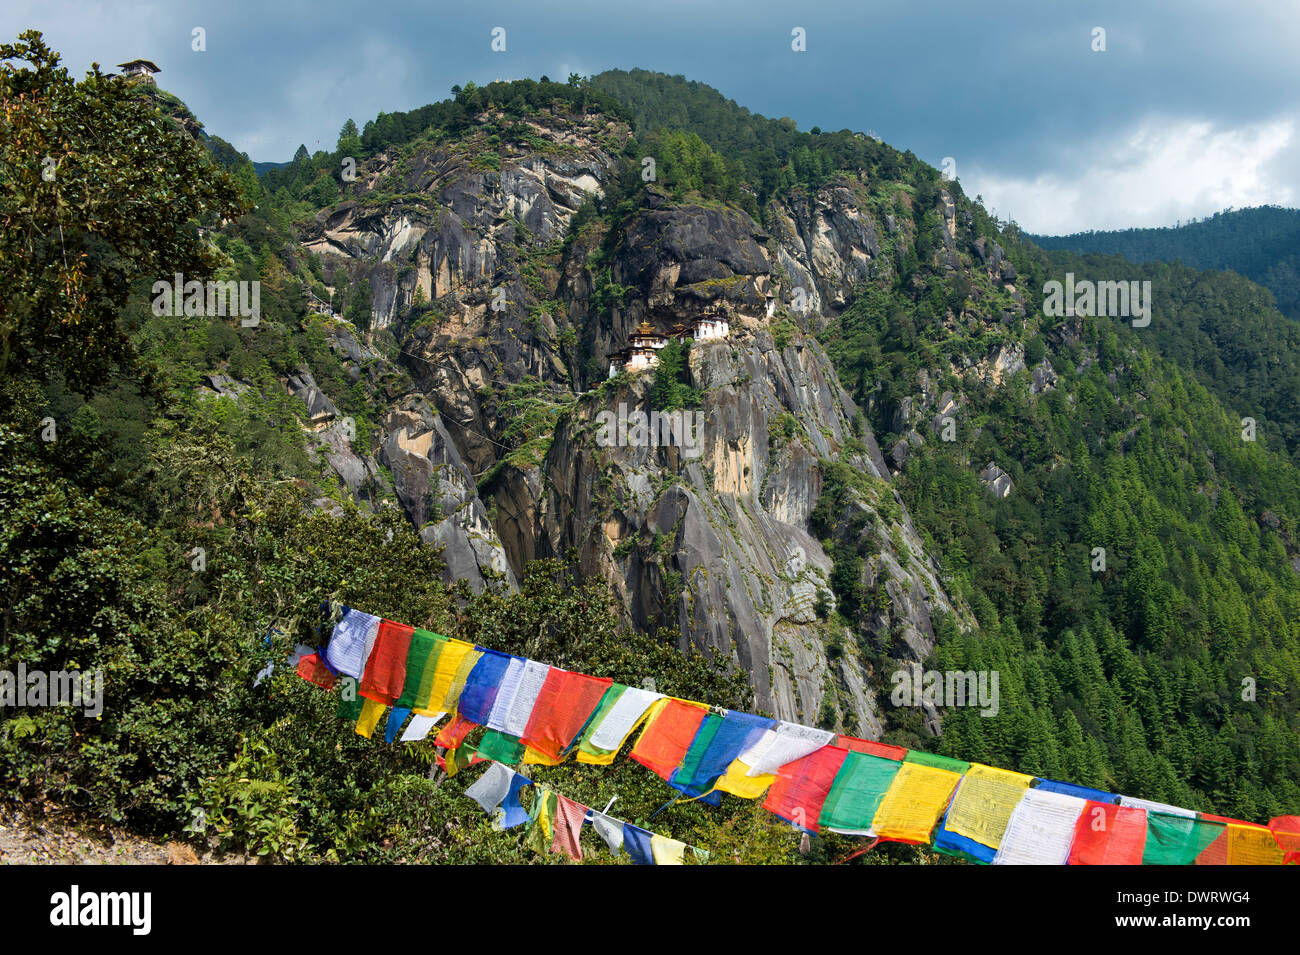 Cliff with the Tiger's Nest Monastery, Taktsang Palphug Monastery, Paro Taktsang, Bhutan - Stock Image